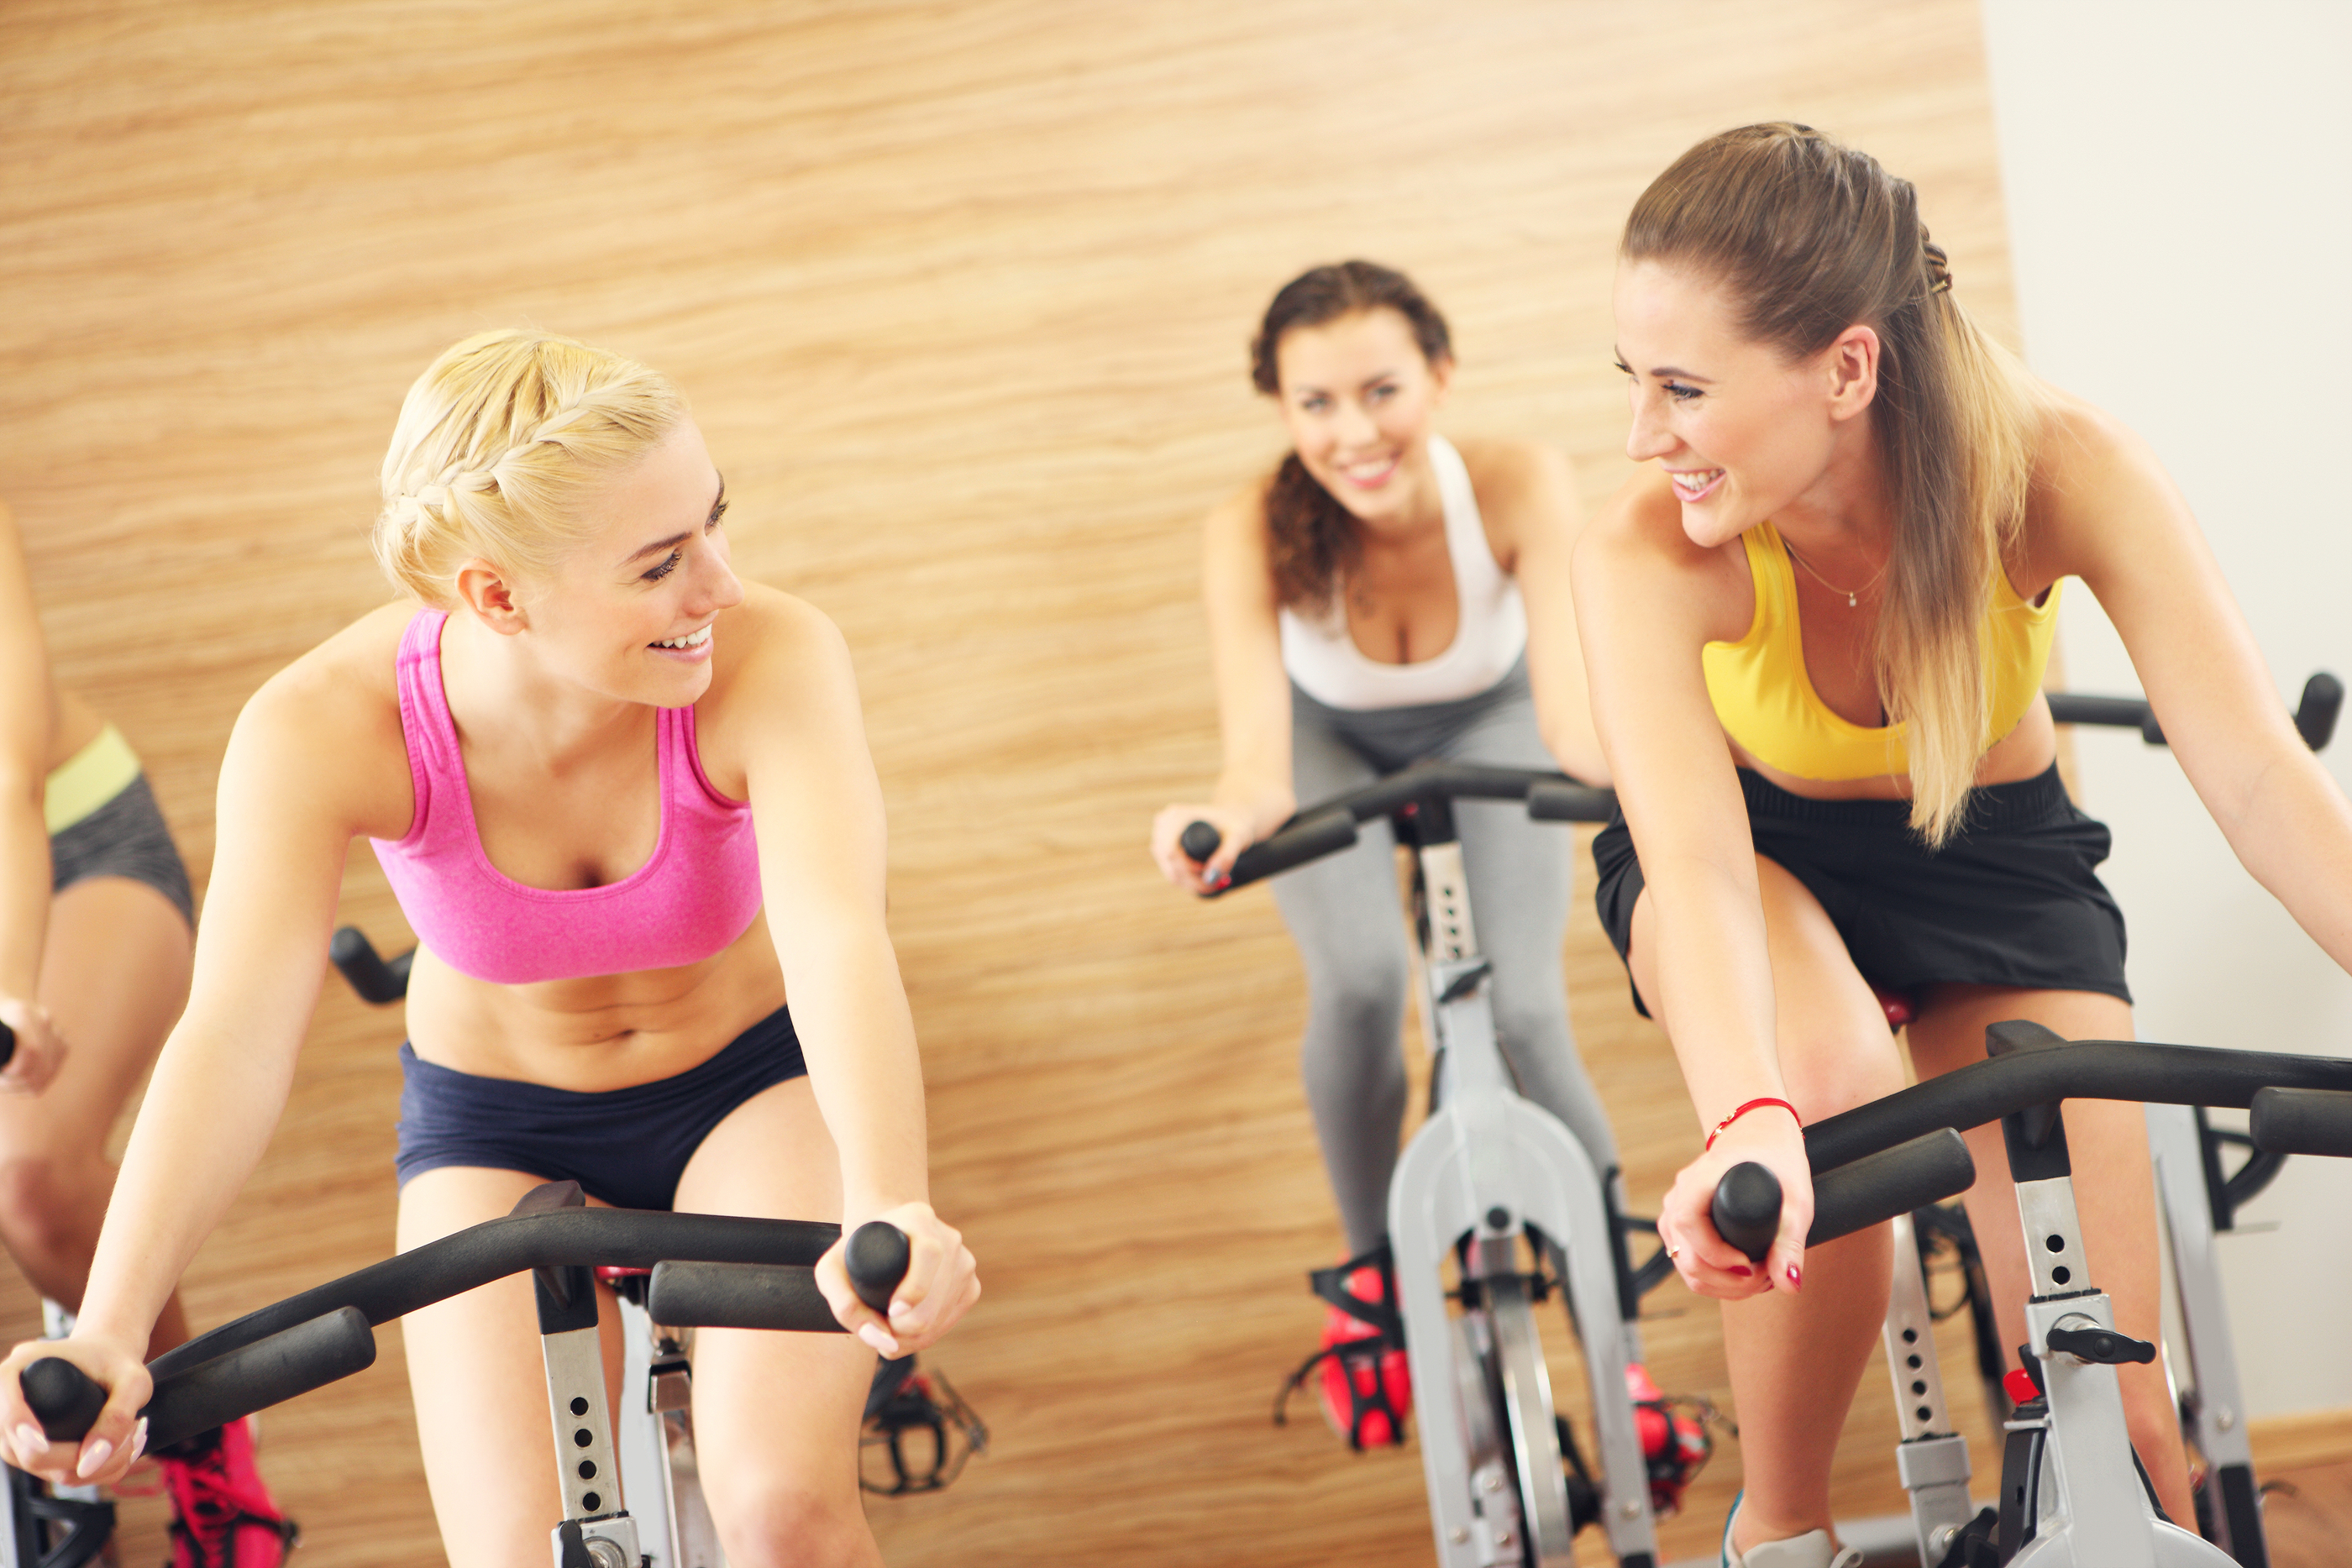 Group X Instructors Discussing Spin Class Ideas